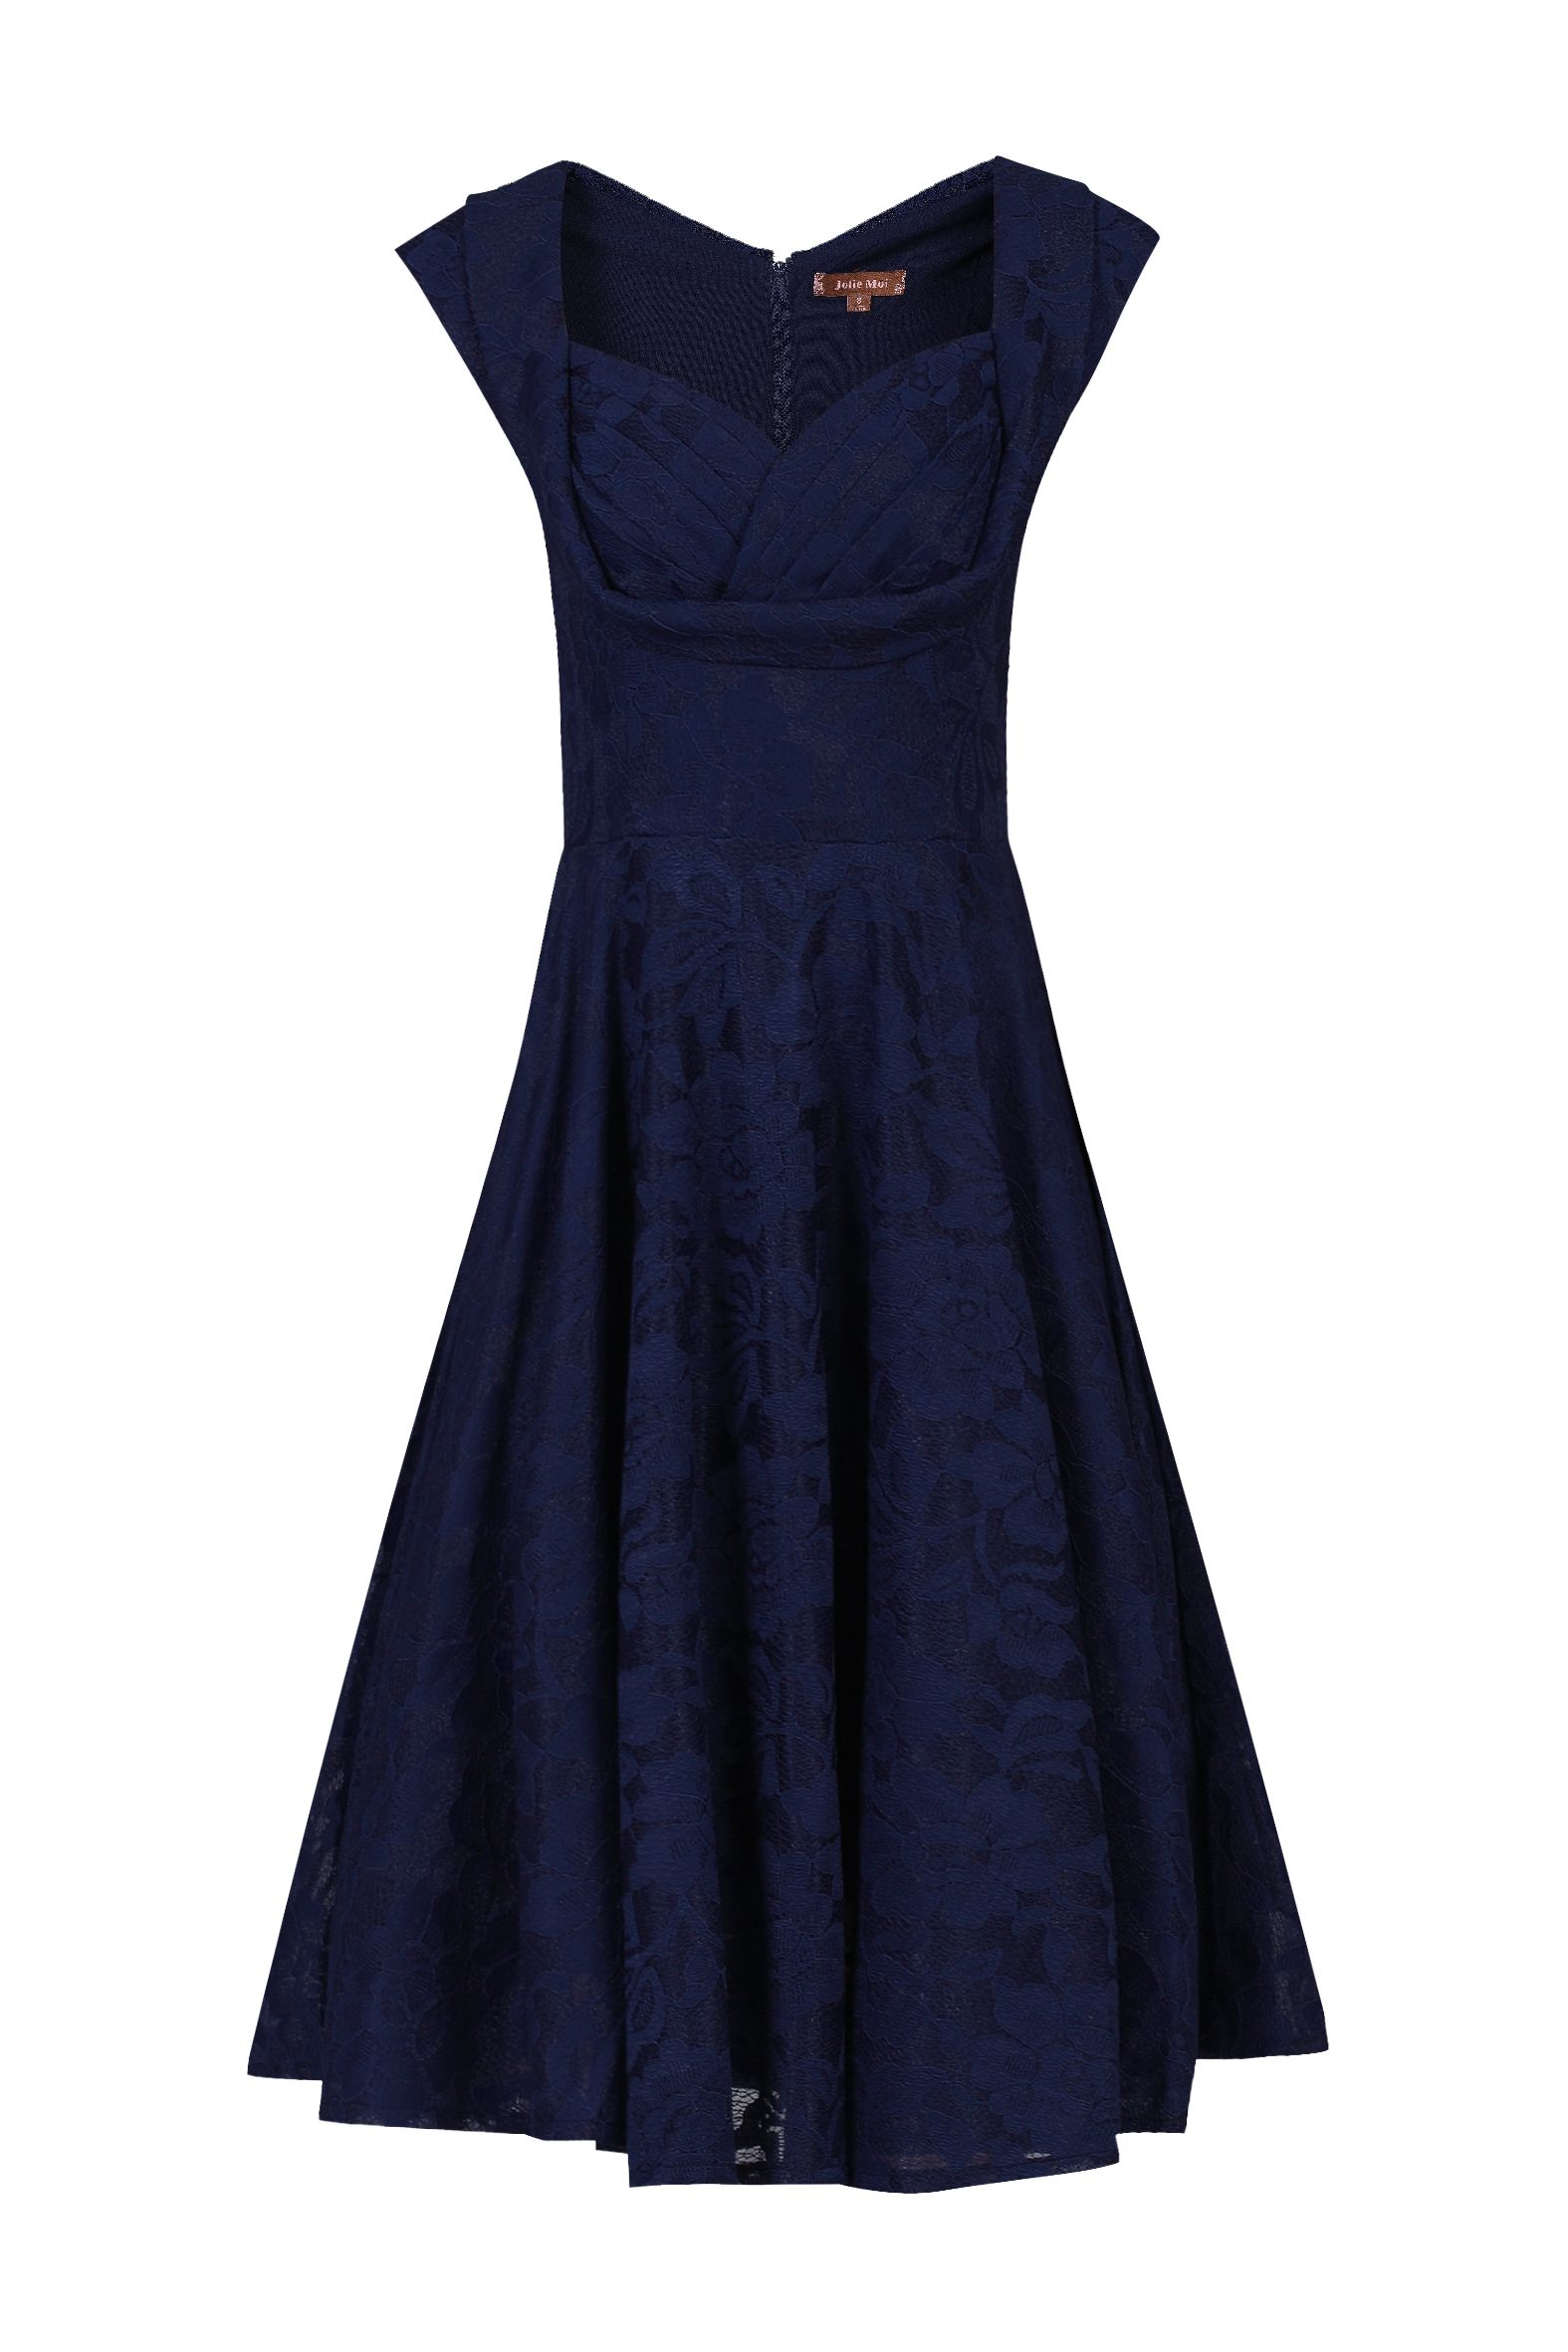 Jolie Moi Ruched Crossover Bust Prom Dress, Blue